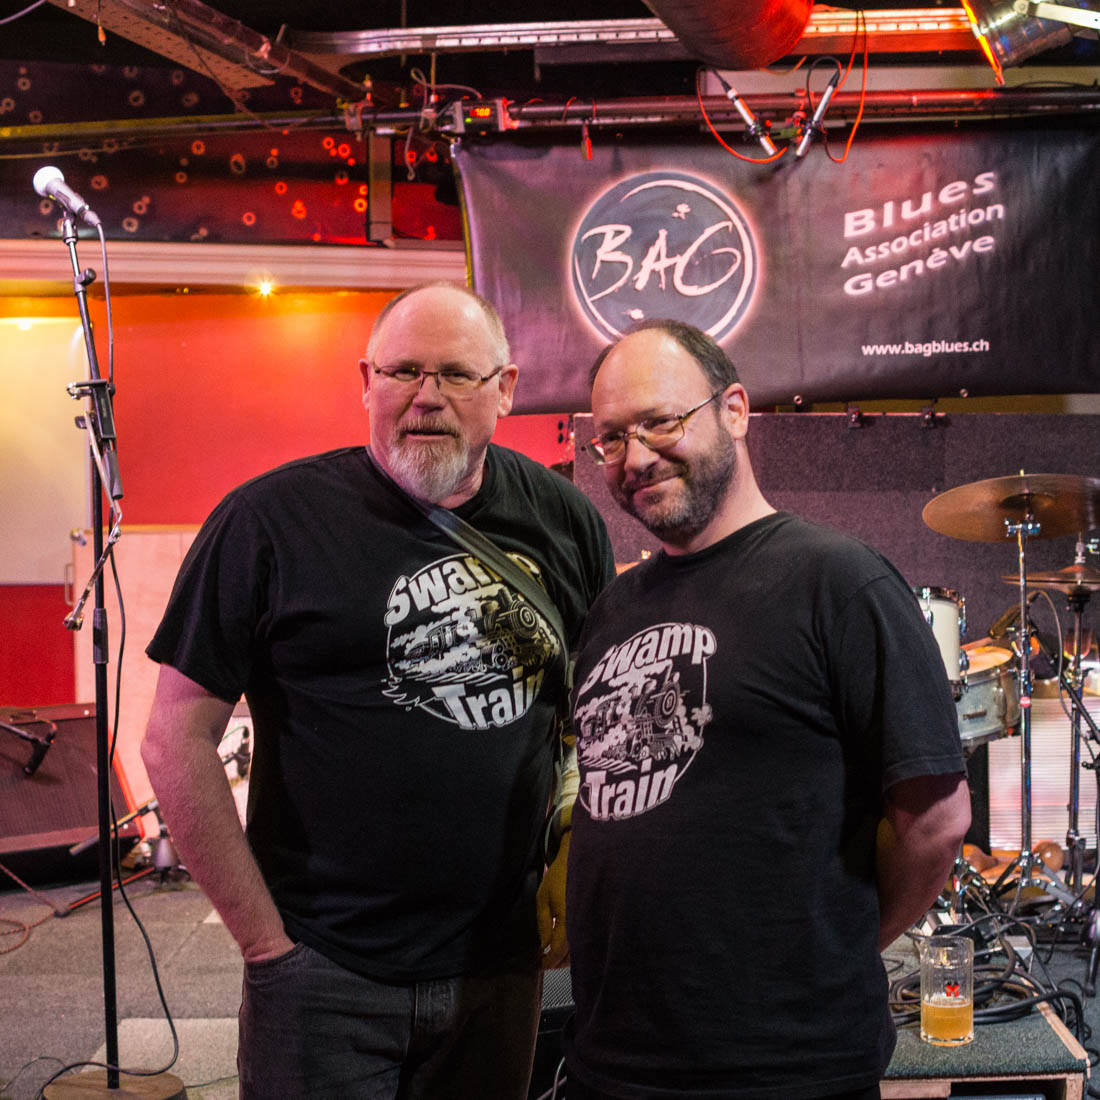 Christophe et Jean-christophe with Swamp Train t-shirts